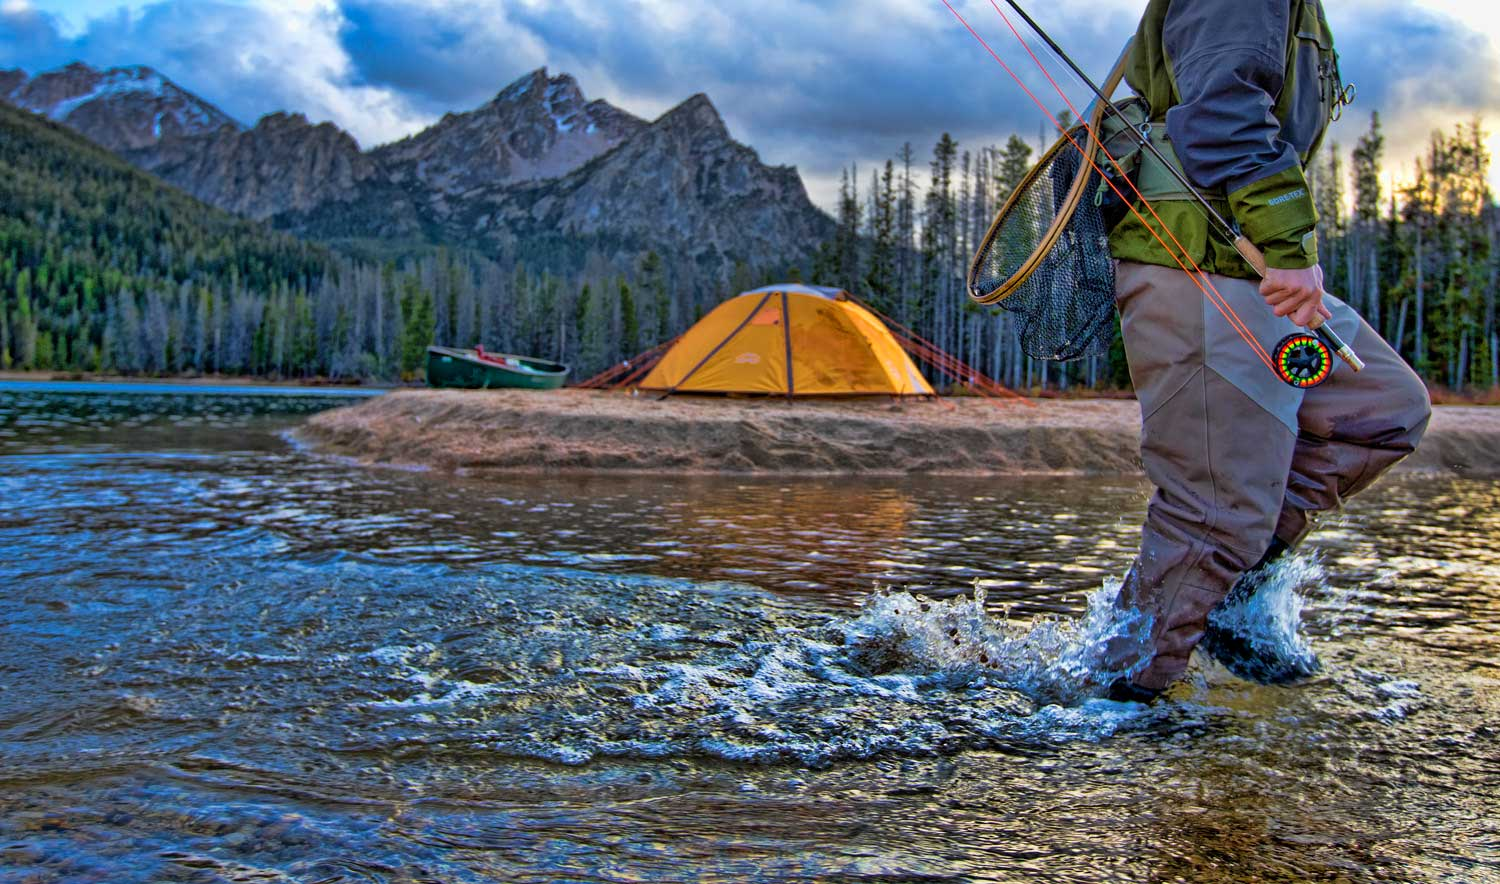 running-fly-fisherman-with-mountain-and-tent-back-drop